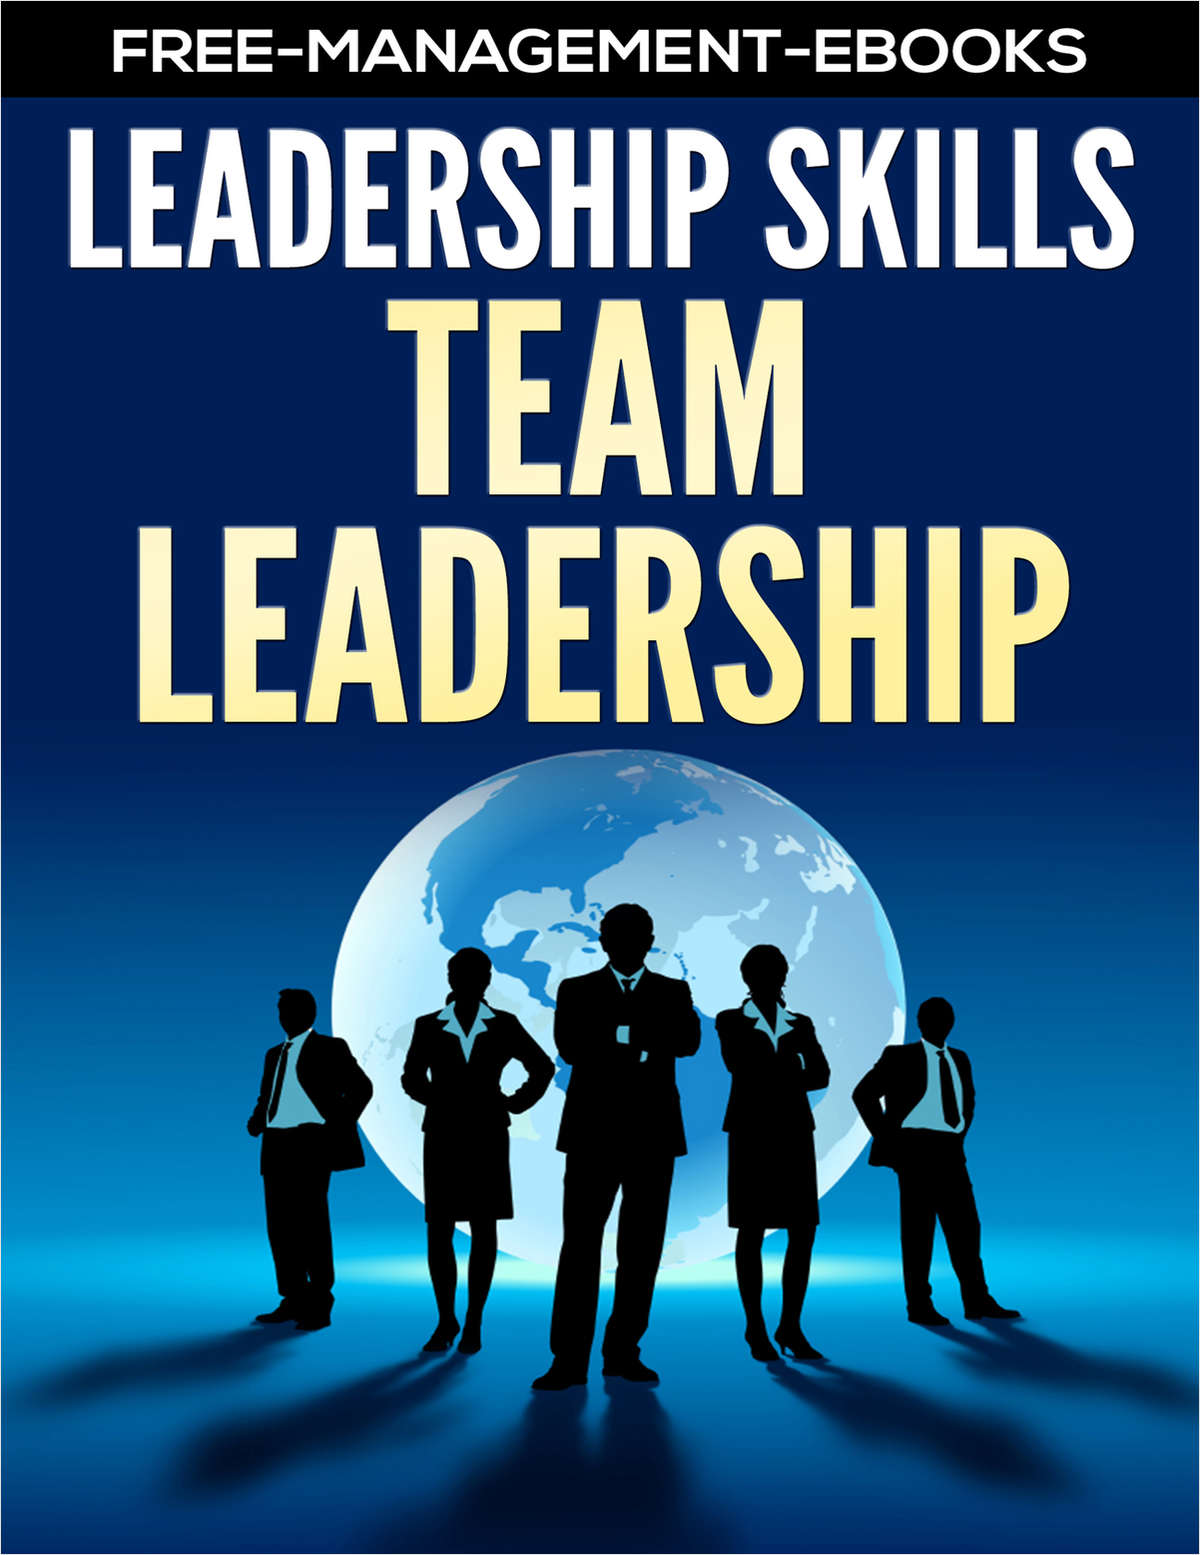 Team Leadership - Developing Your Leadership Skills